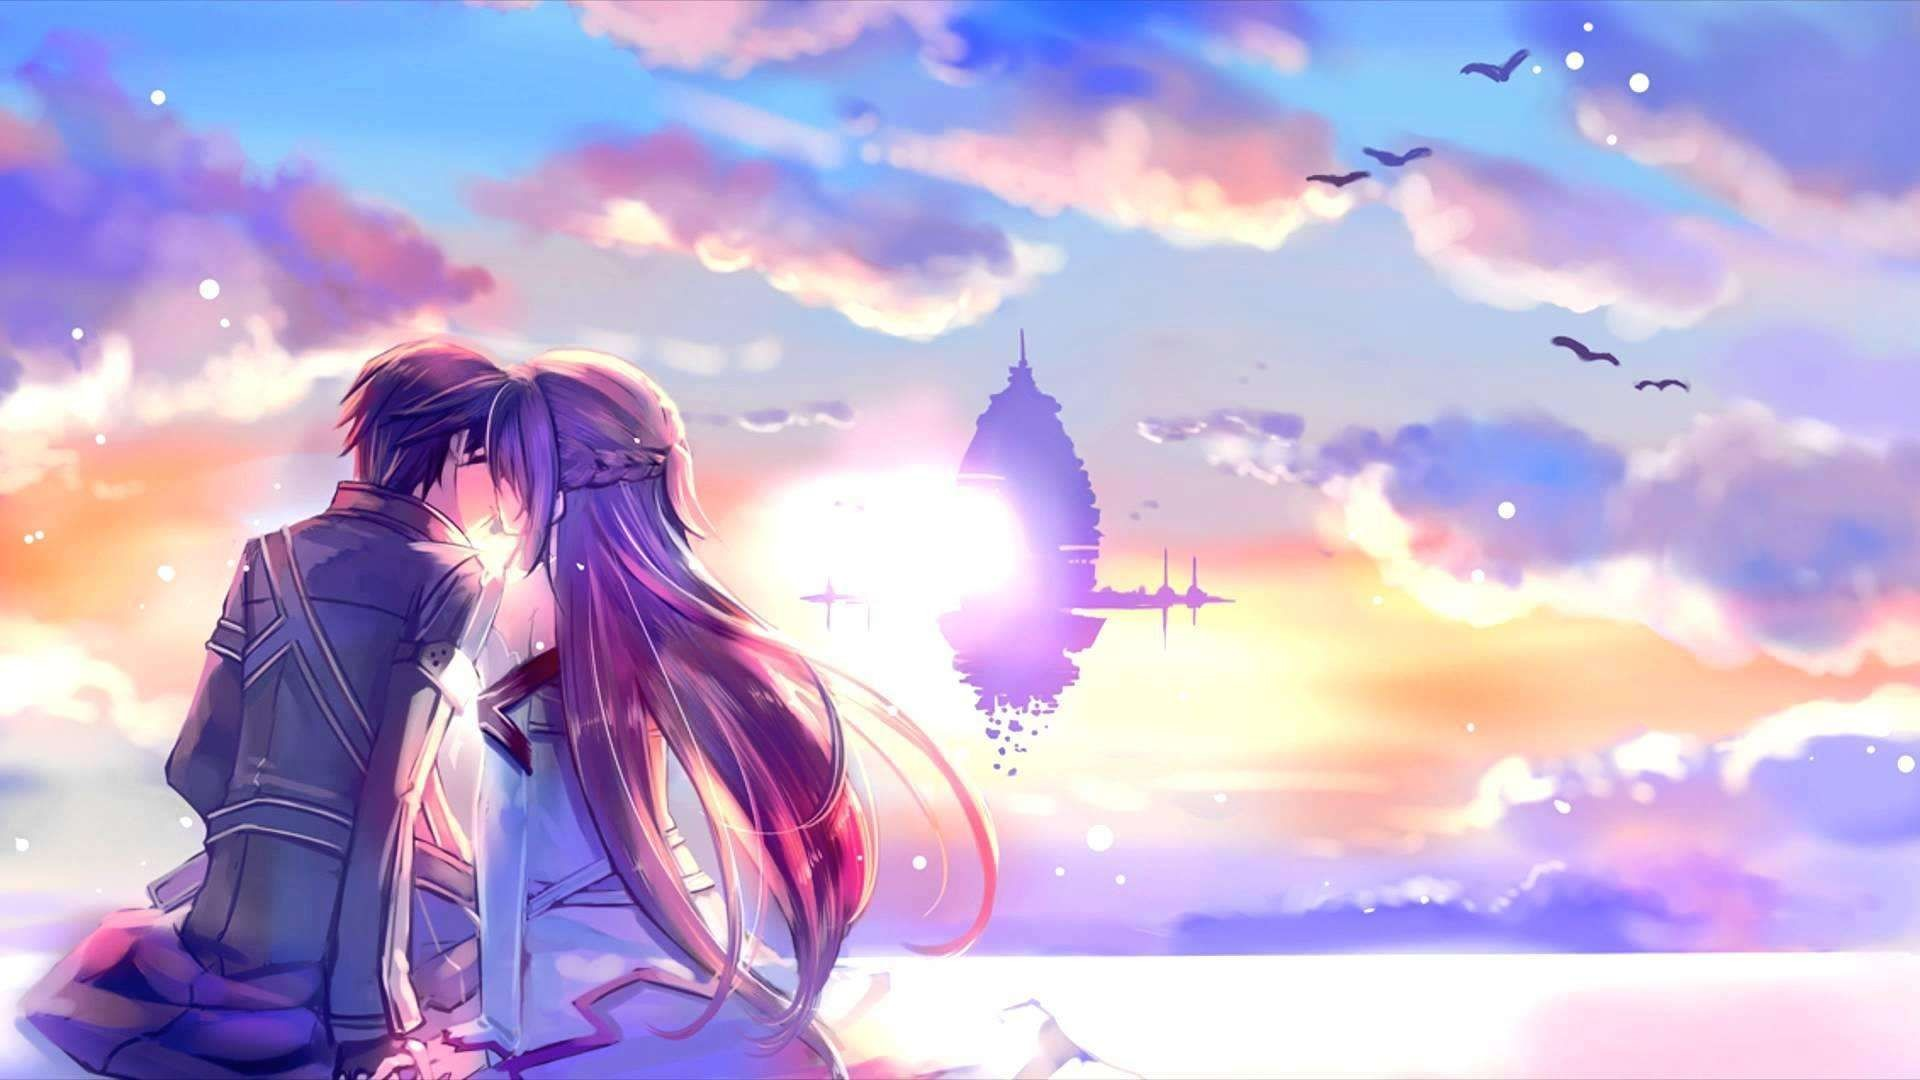 X New Anime Love Wallpaper Hd P At Hdwallwide Com High Definition  Of